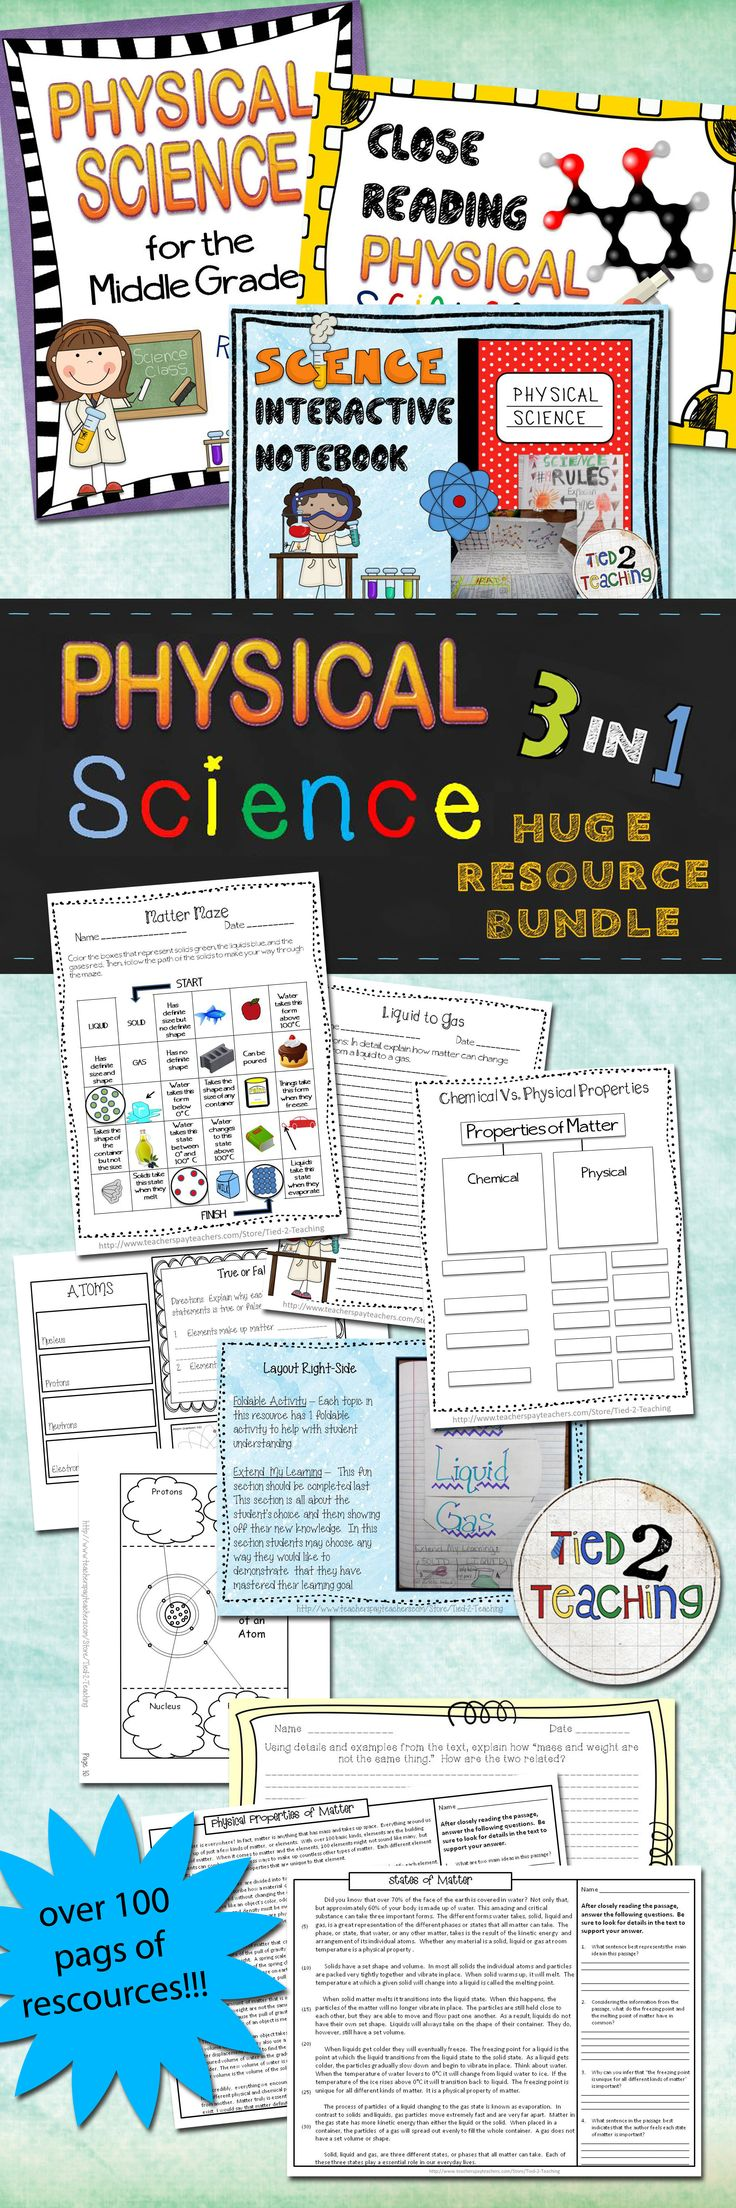 1164 best images about Science Teachers Rule on Pinterest | Dna ...